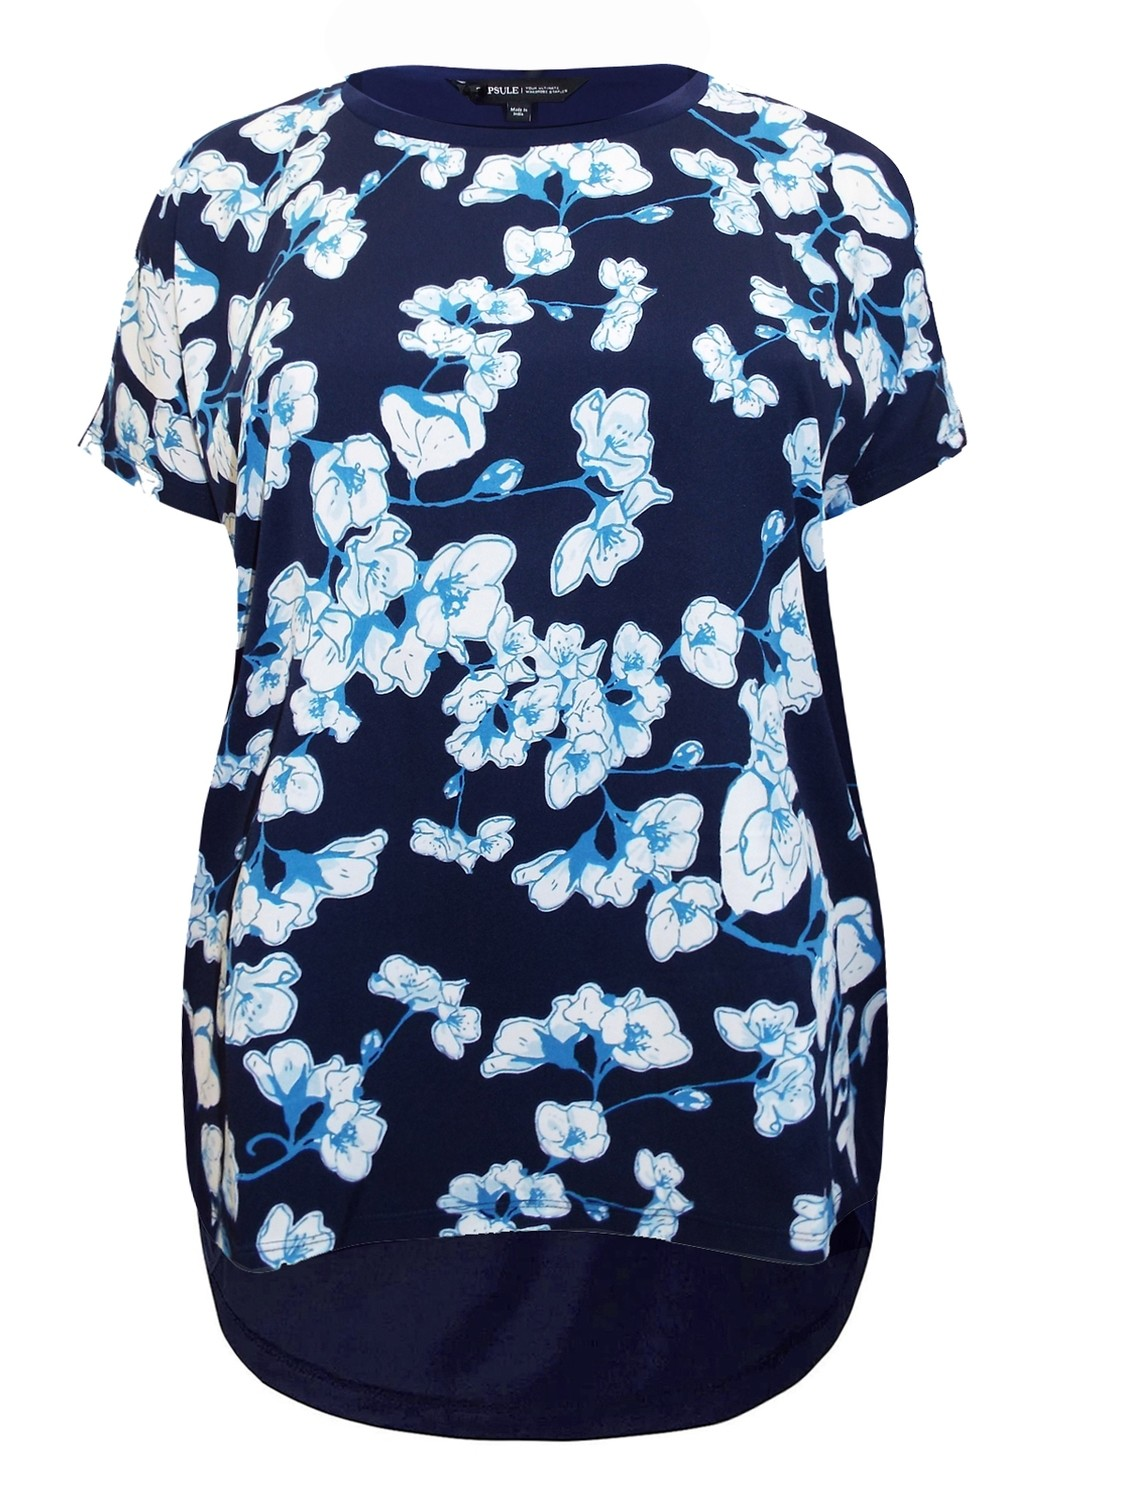 Floral Print Dipped Hem Woven Top by Capsule